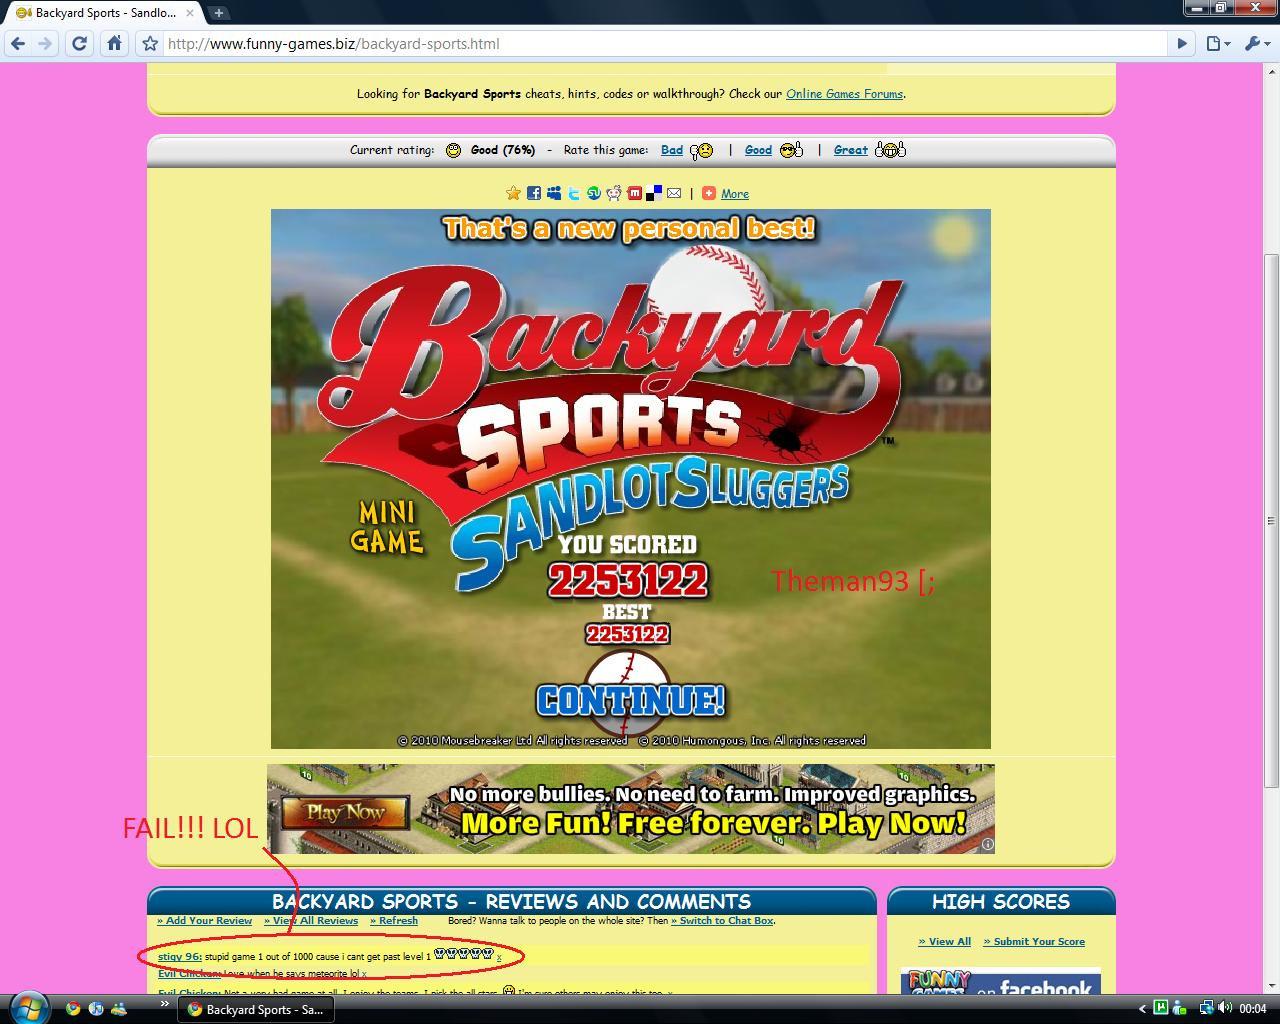 backyard sports sandlot sluggers baseball online game